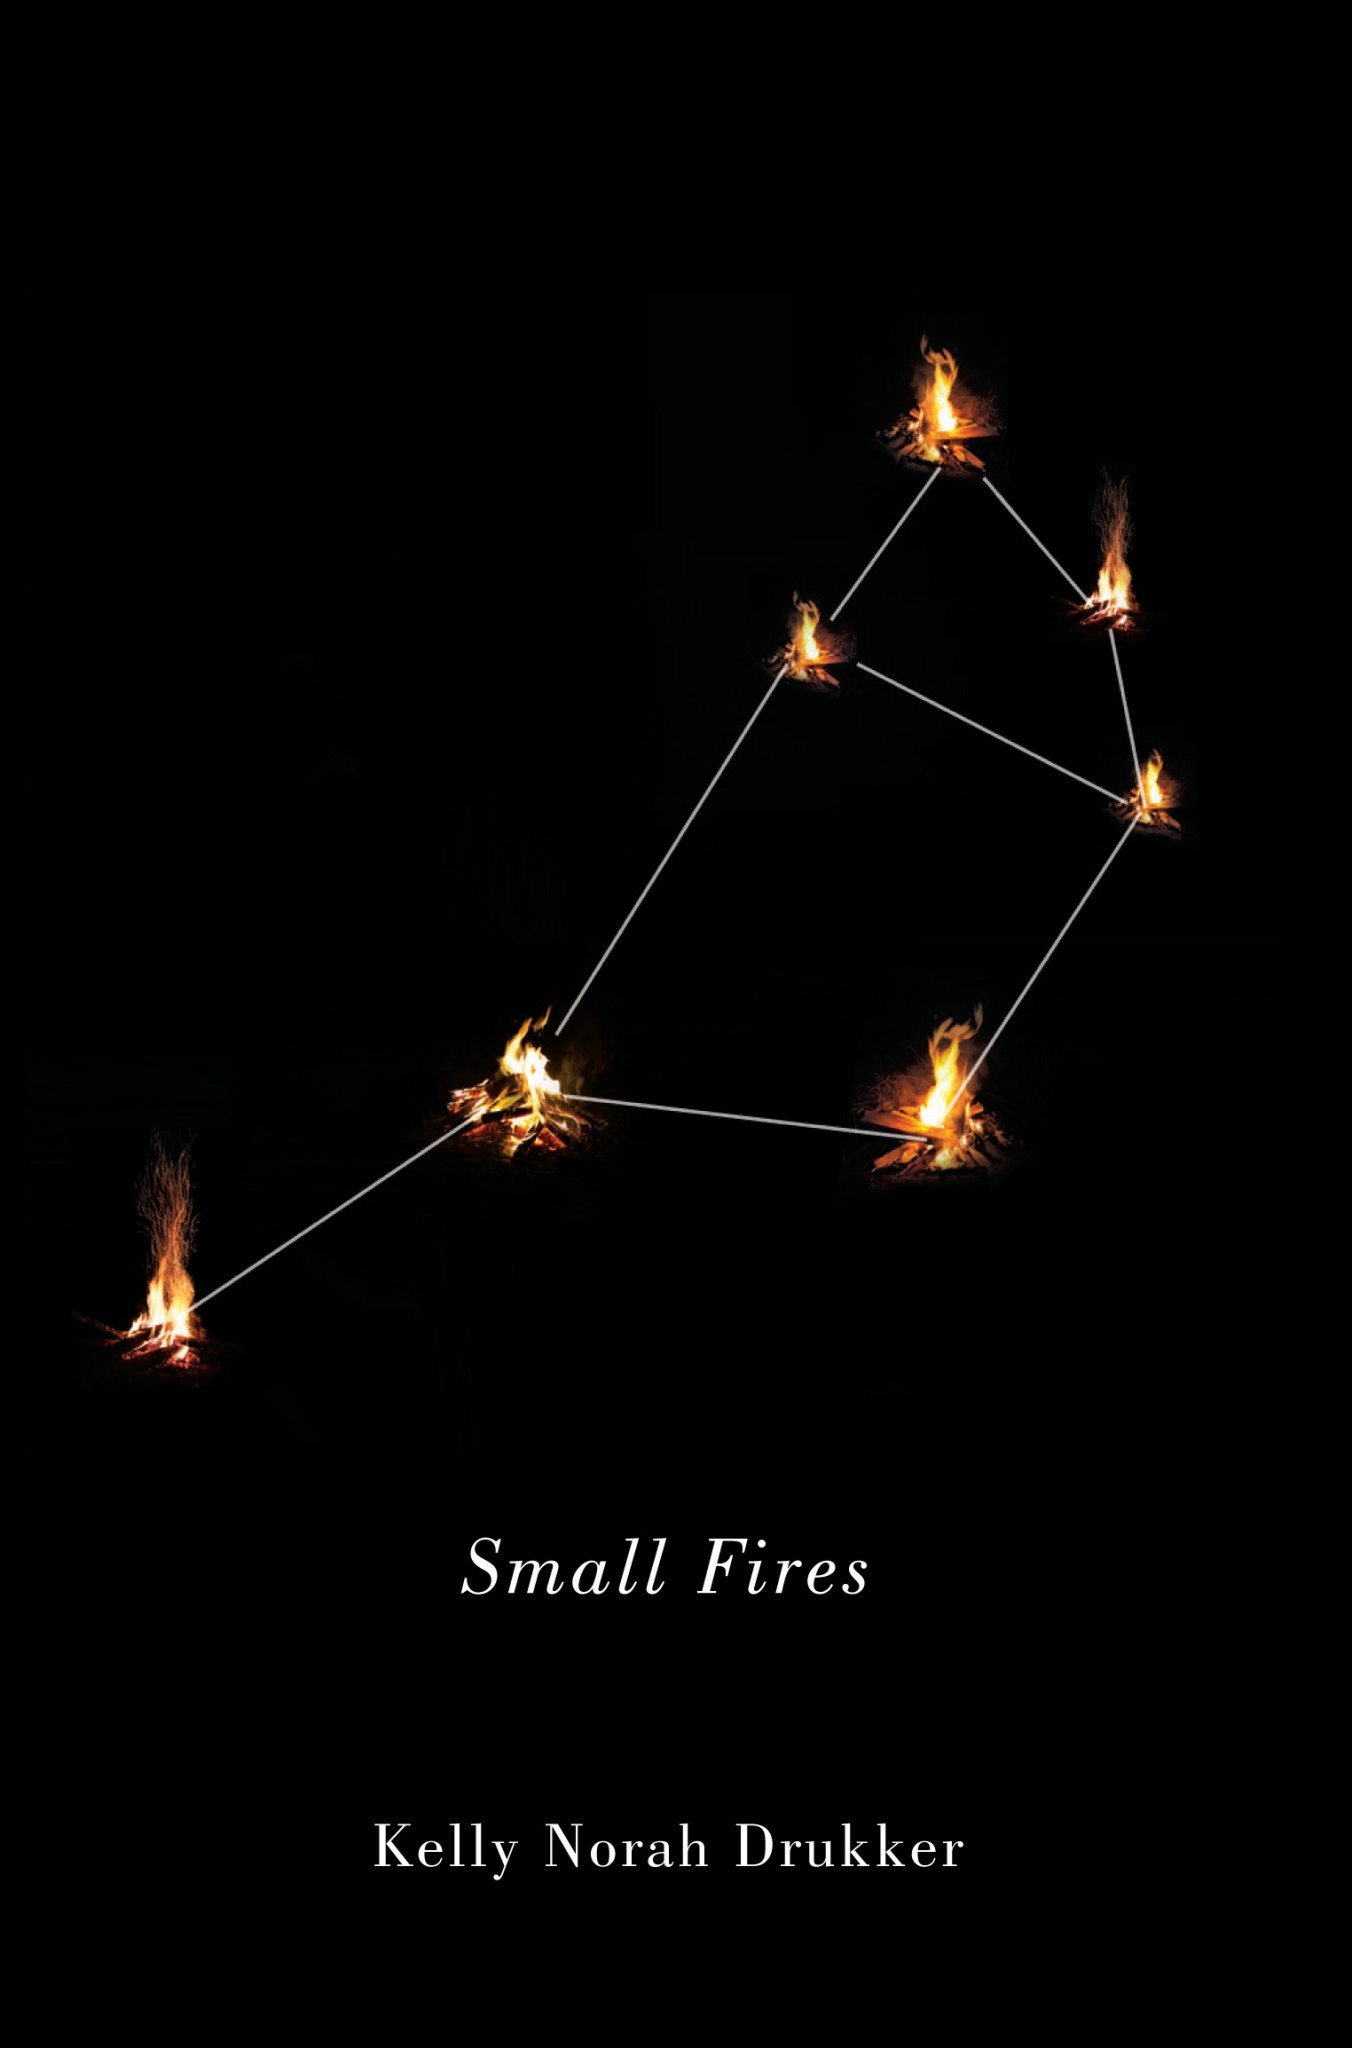 Kelly Drukker Small Fires Books of the Year